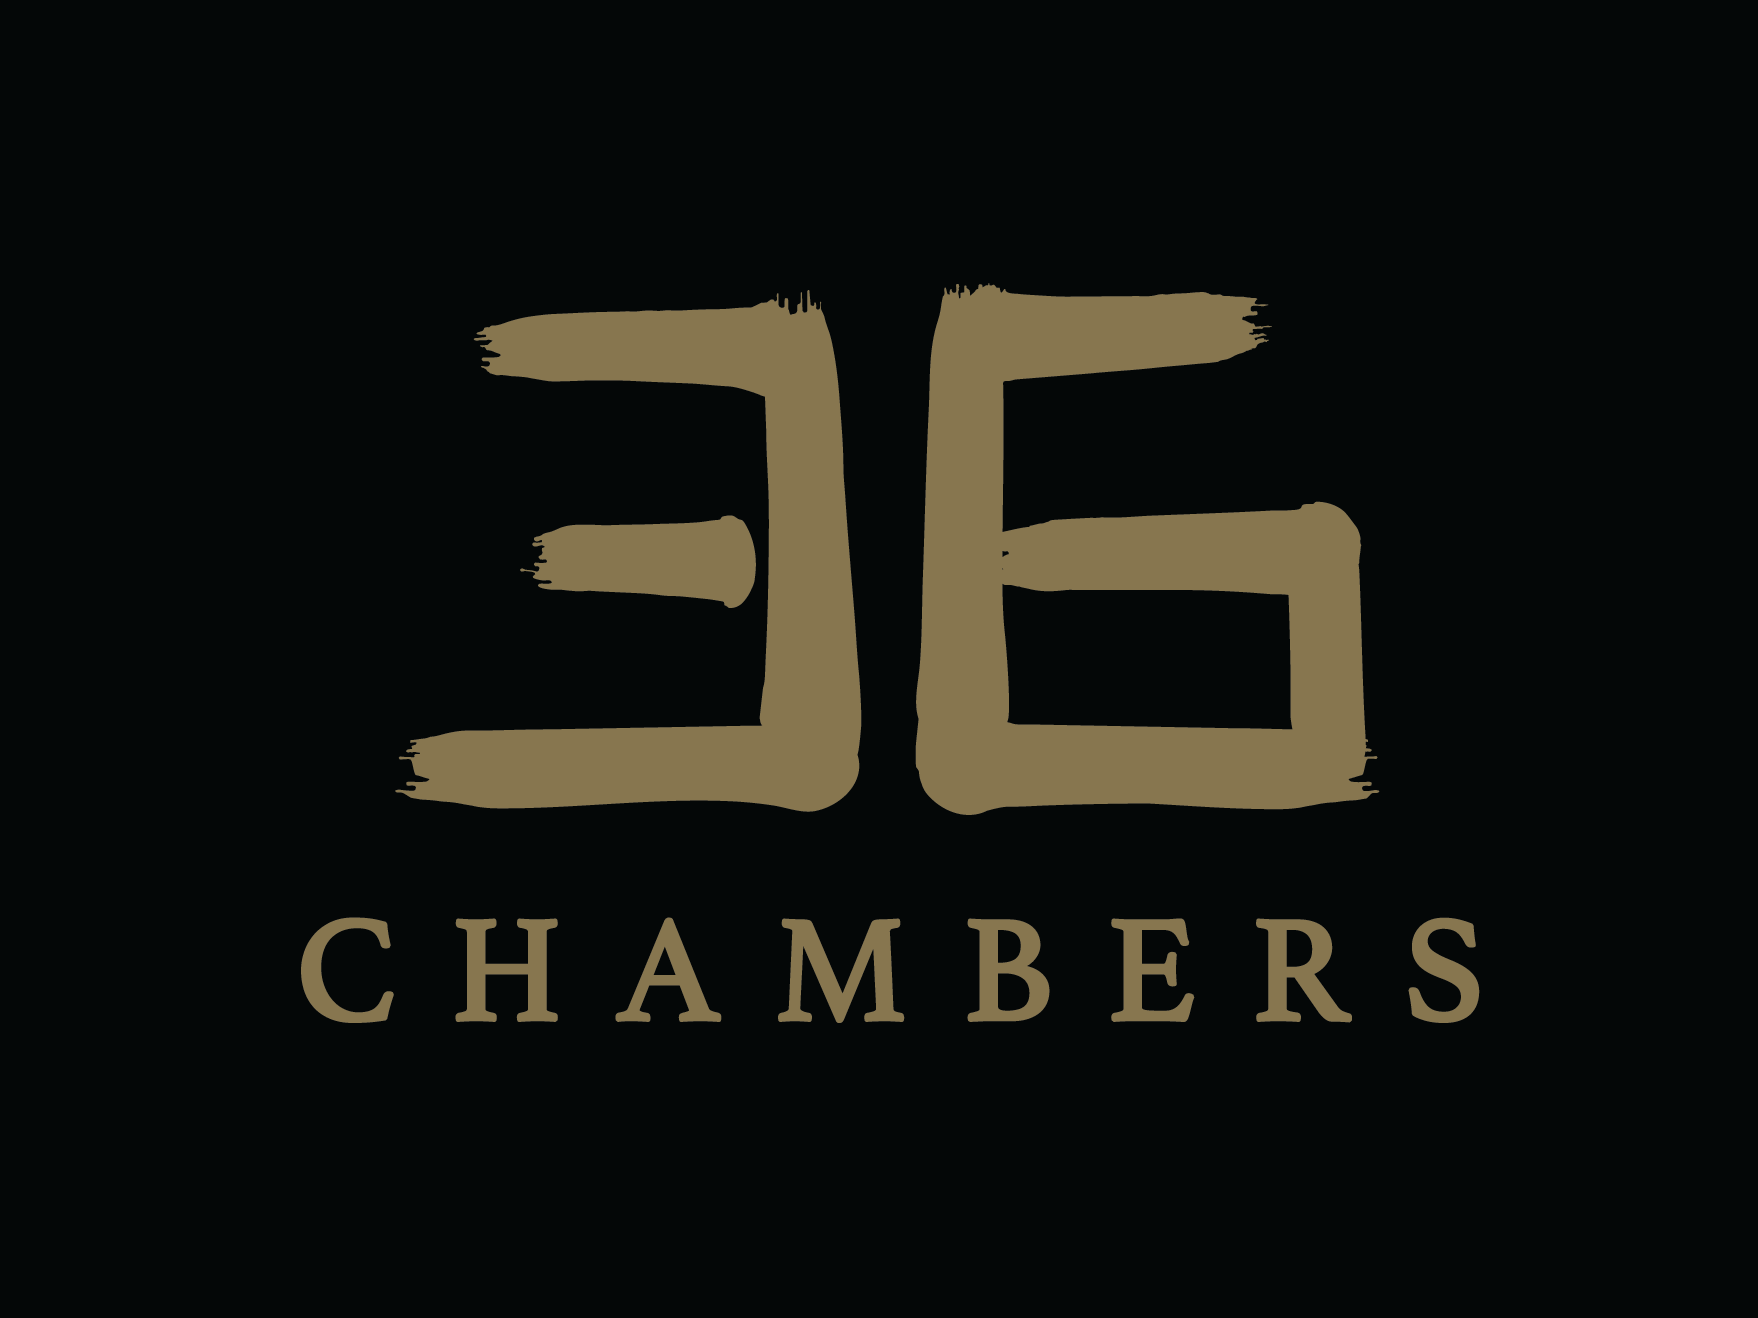 RZA Enters Fashion World With 36 Chambers Clothing Line